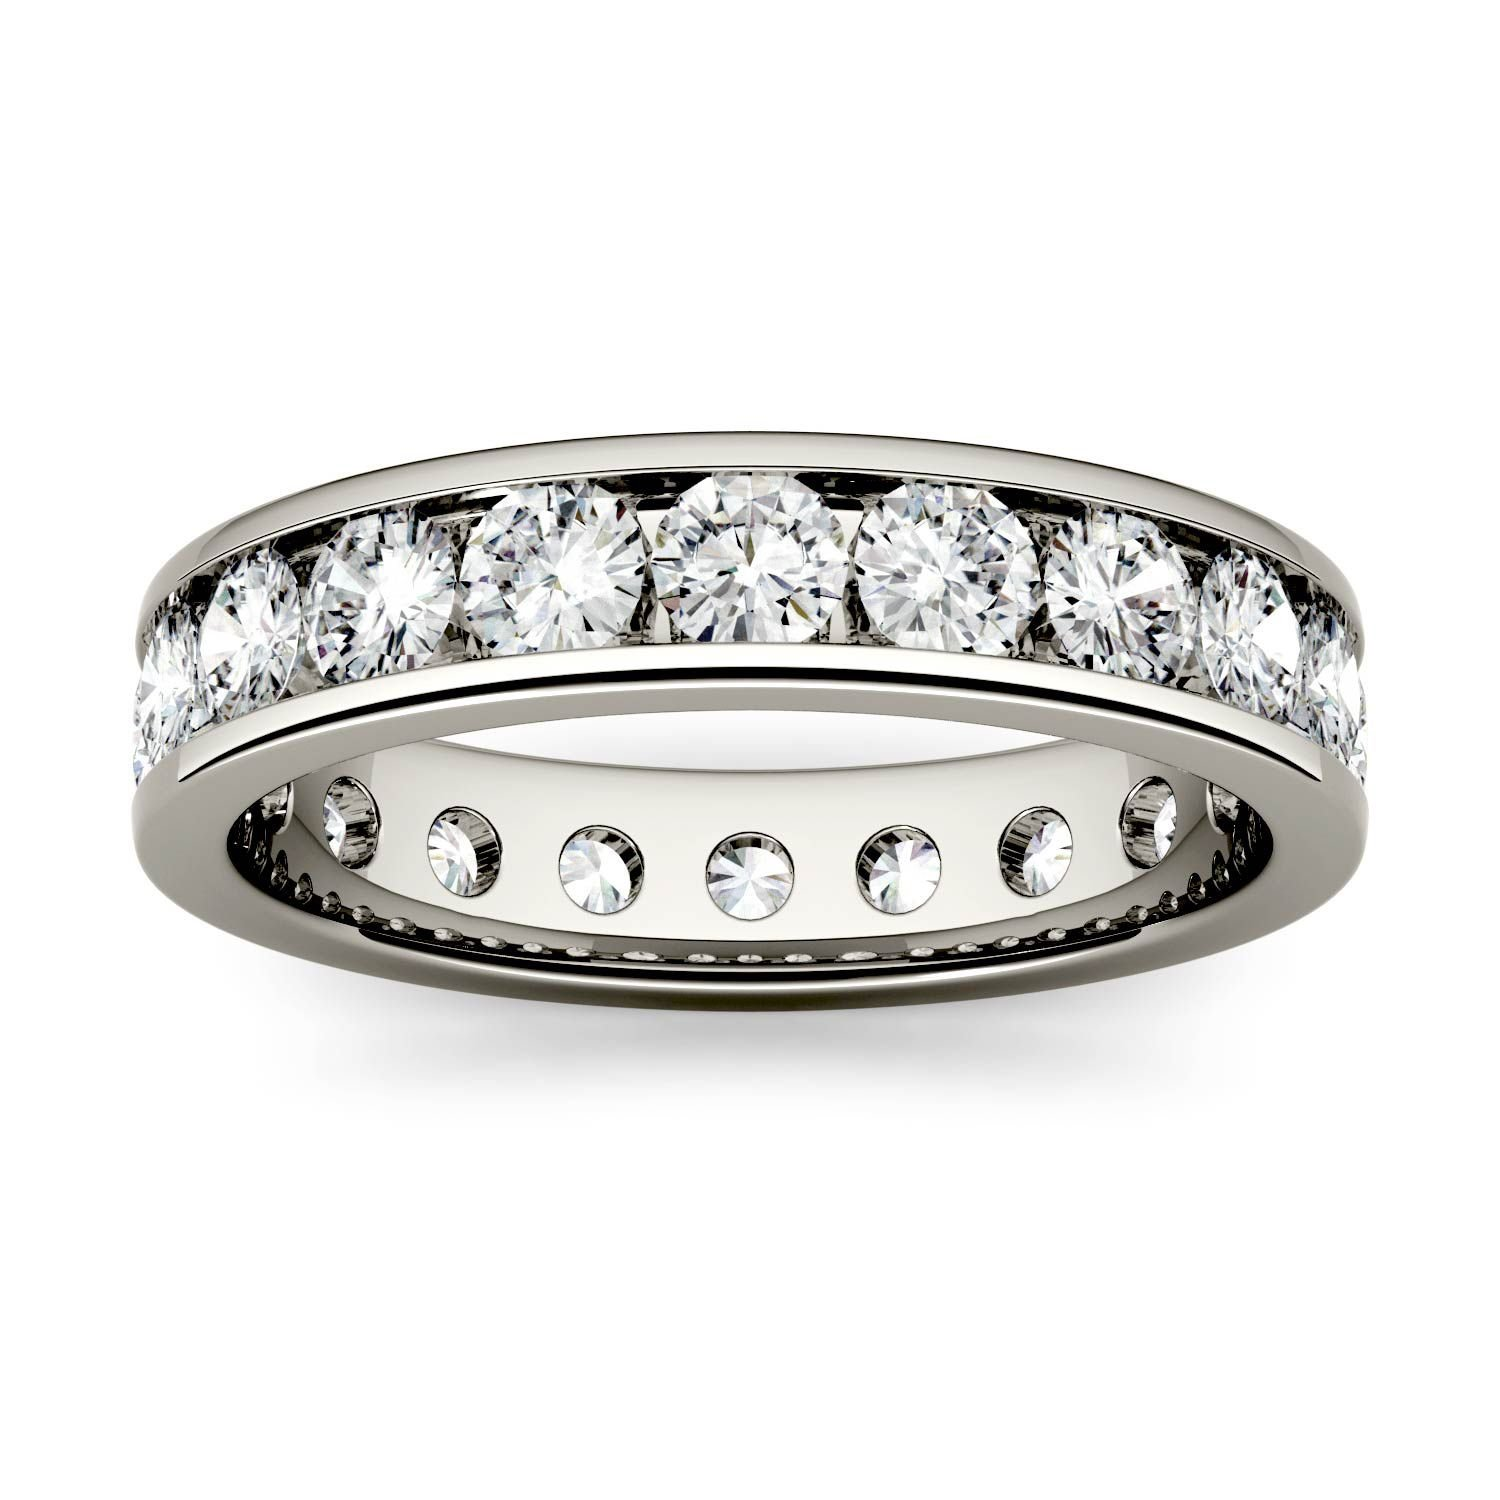 Forever One Round 3.0mm Moissanite Eternity Band-size 8, 2.20cttw DEW (D-E-F) By Charles & Colvard